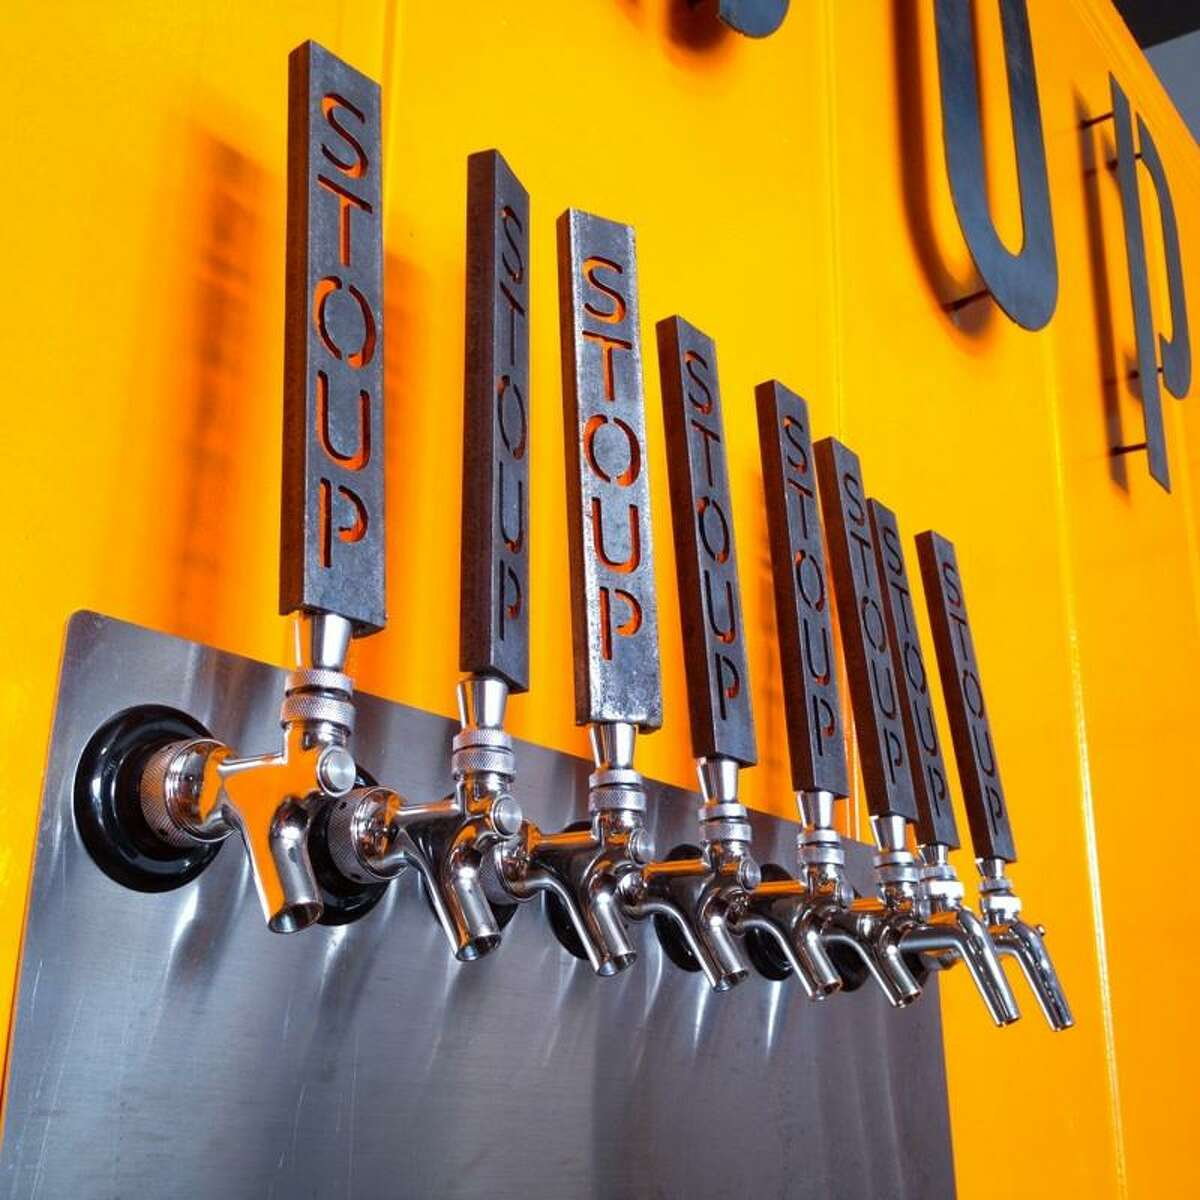 Stoup , one of the bajillion new microbrewery/tasting rooms in Ballard, opened in October. Its cozy, trendy tap room cuts down on the industrial feel of other like breweries and, like other local tap rooms, brings in a rotation of local food trucks to complement the local pours. Stoup offers an India Session Ale, Northwest Red, Weissbier and IPA, among other brews.